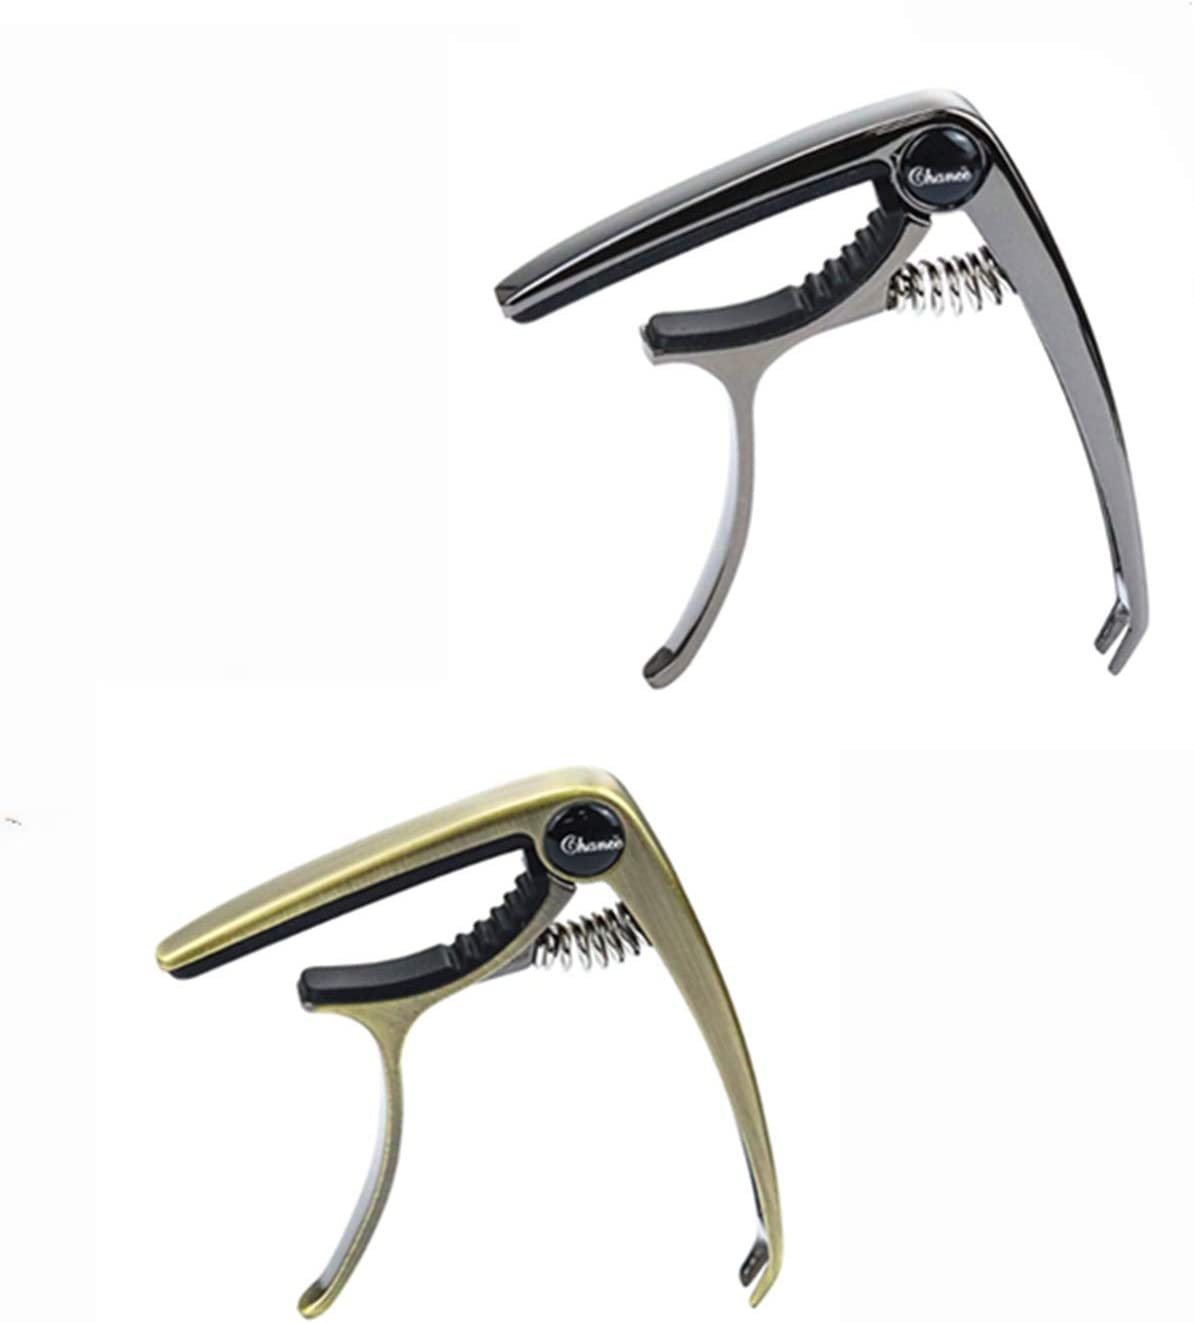 Zinc Alloy Max 44% OFF Special price for a limited time Guitar Capo 2 Pack 6-String Acoustic for Electric and